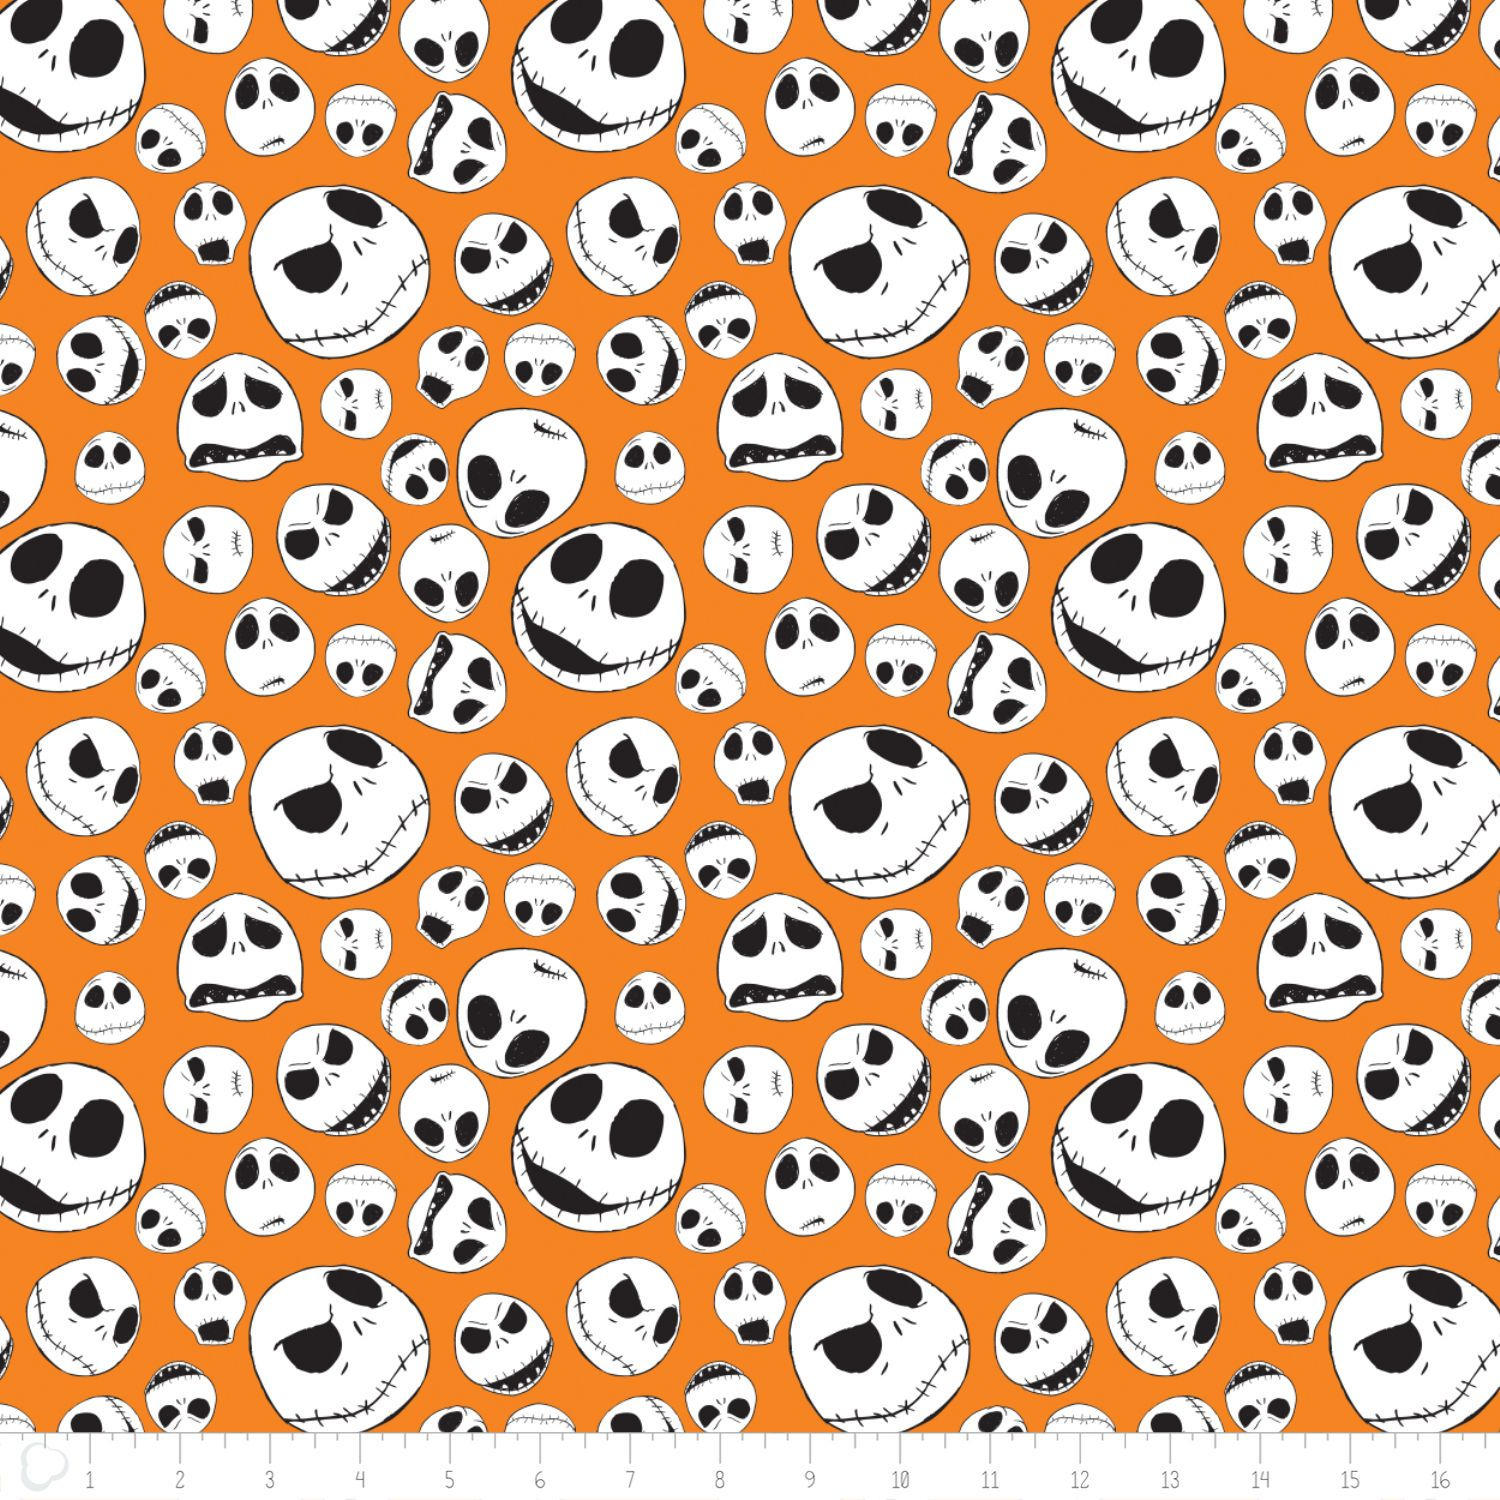 Disney Christmas Fabric By The Yard.Disney Nightmare Before Christmas Jack Faces Orange Cotton